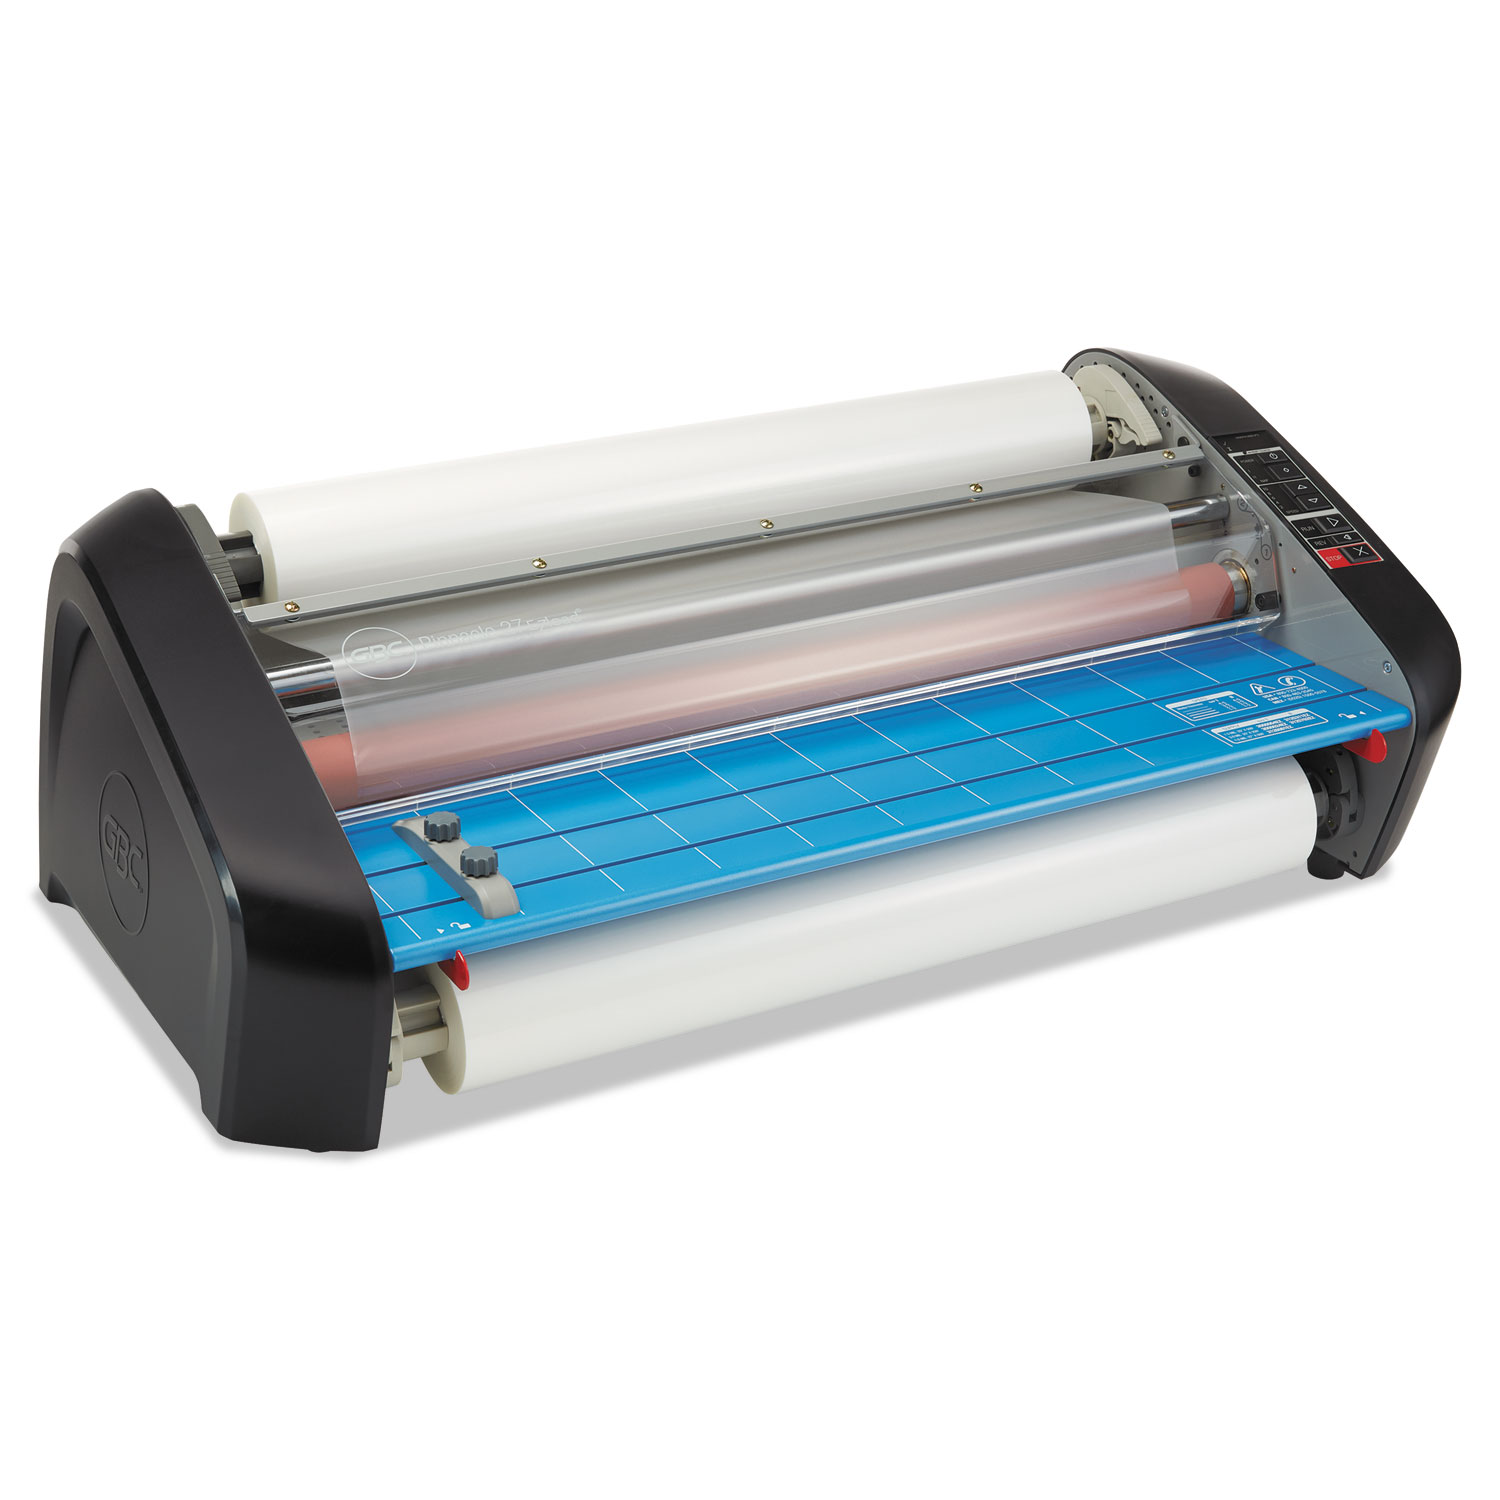 "Pinnacle 27 EZload Laminator, 27"" Max Document Width, 3 mil Max Document Thickness"